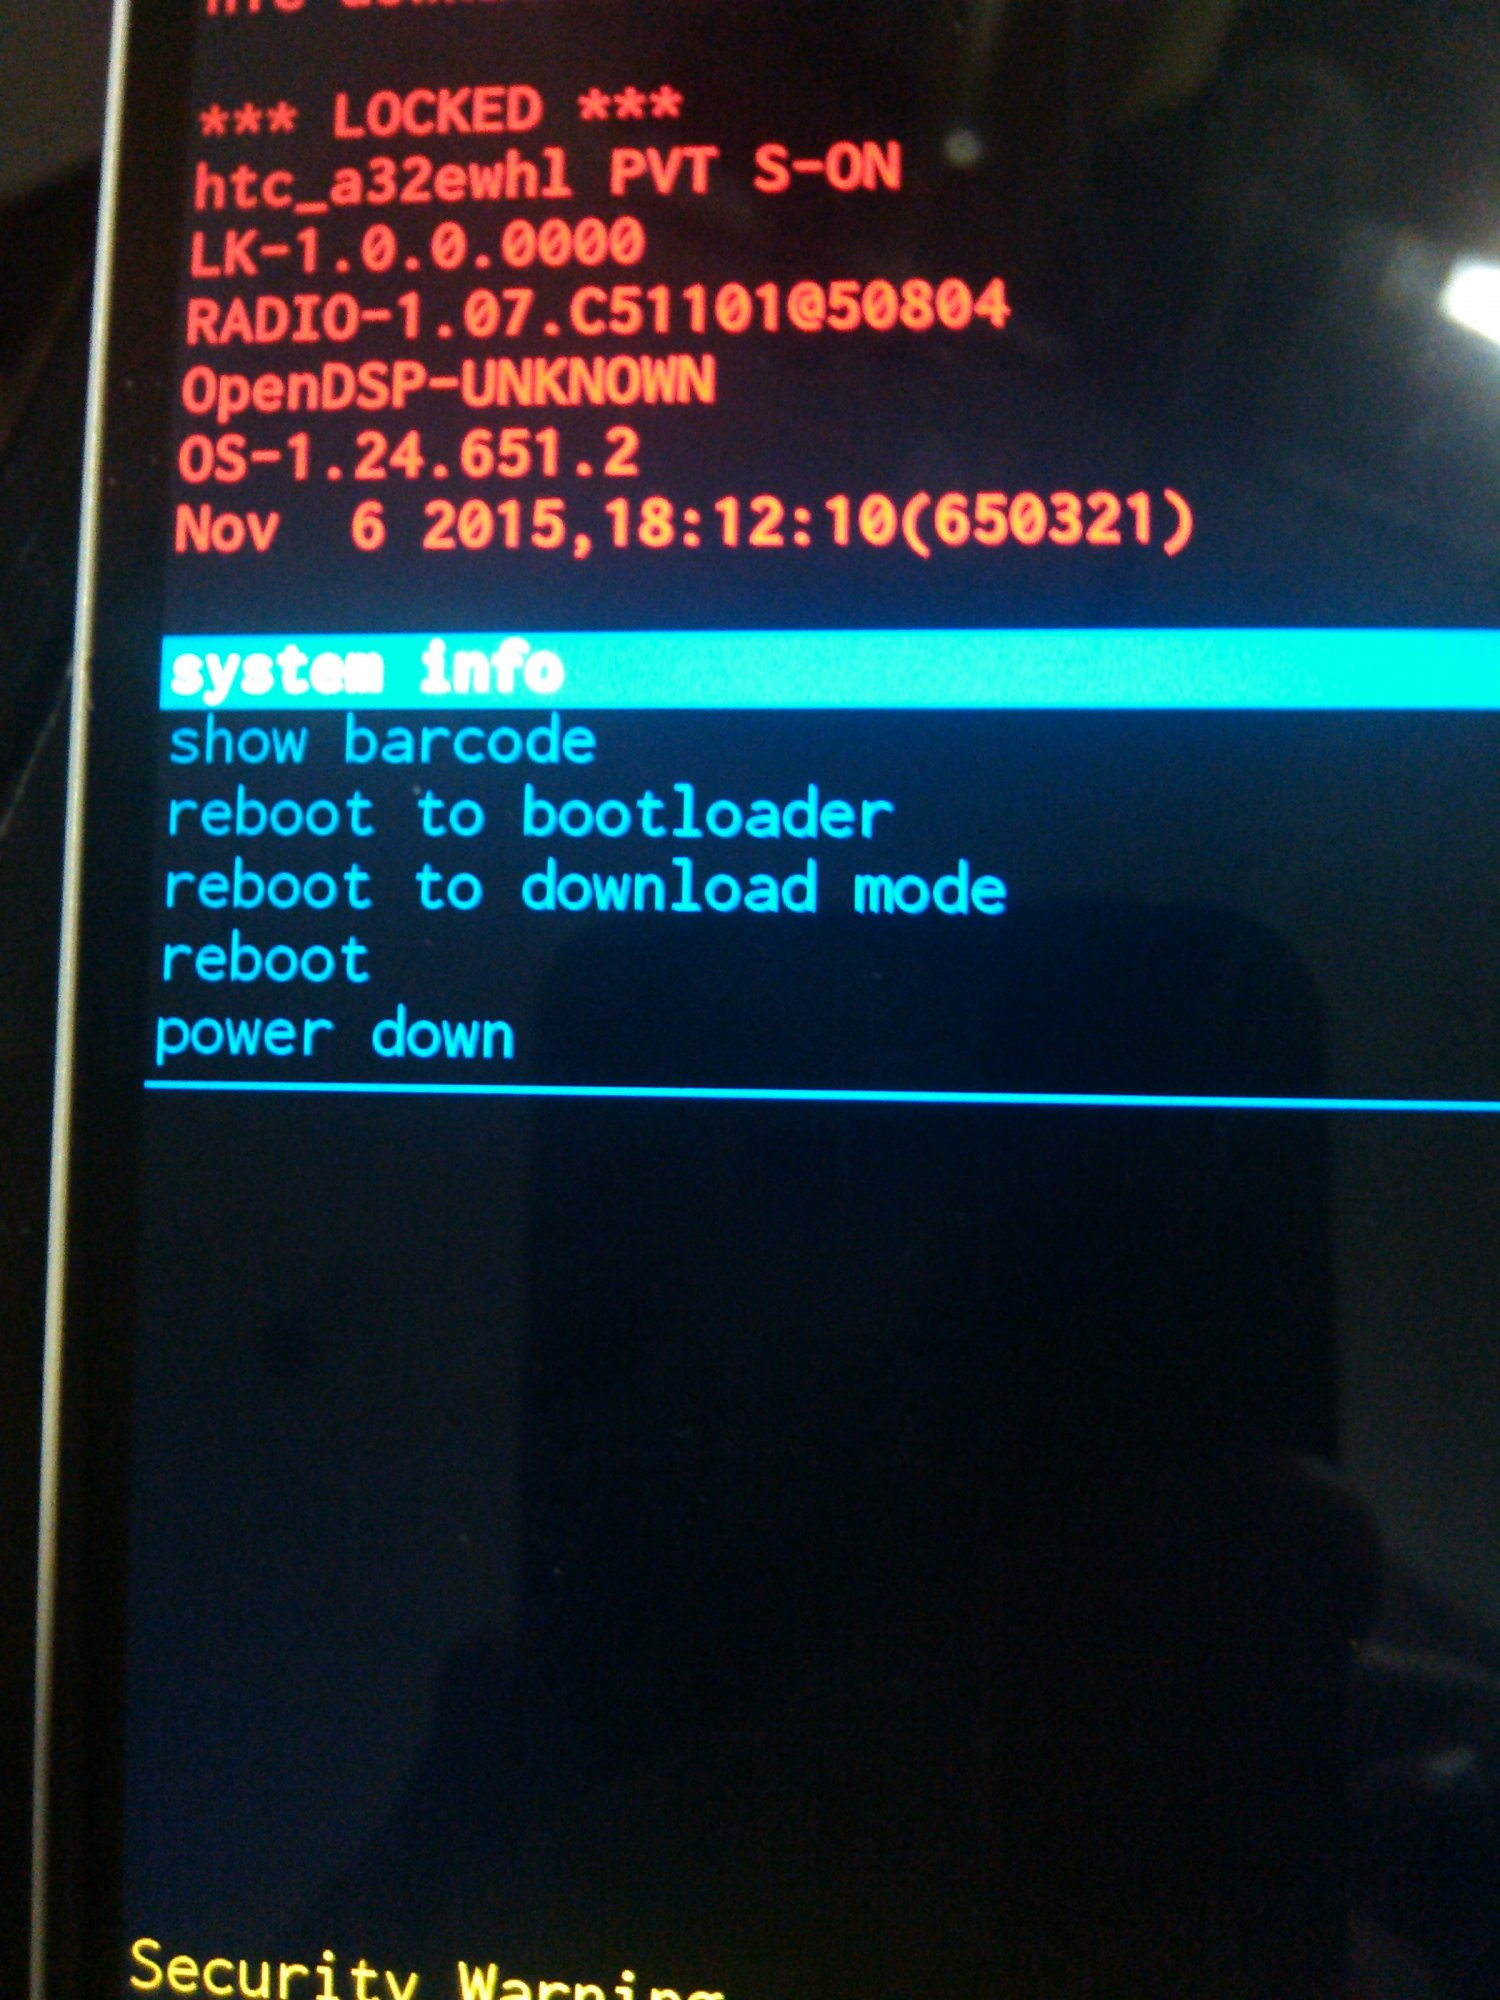 I need some help unlocking the bootloader for my HTC